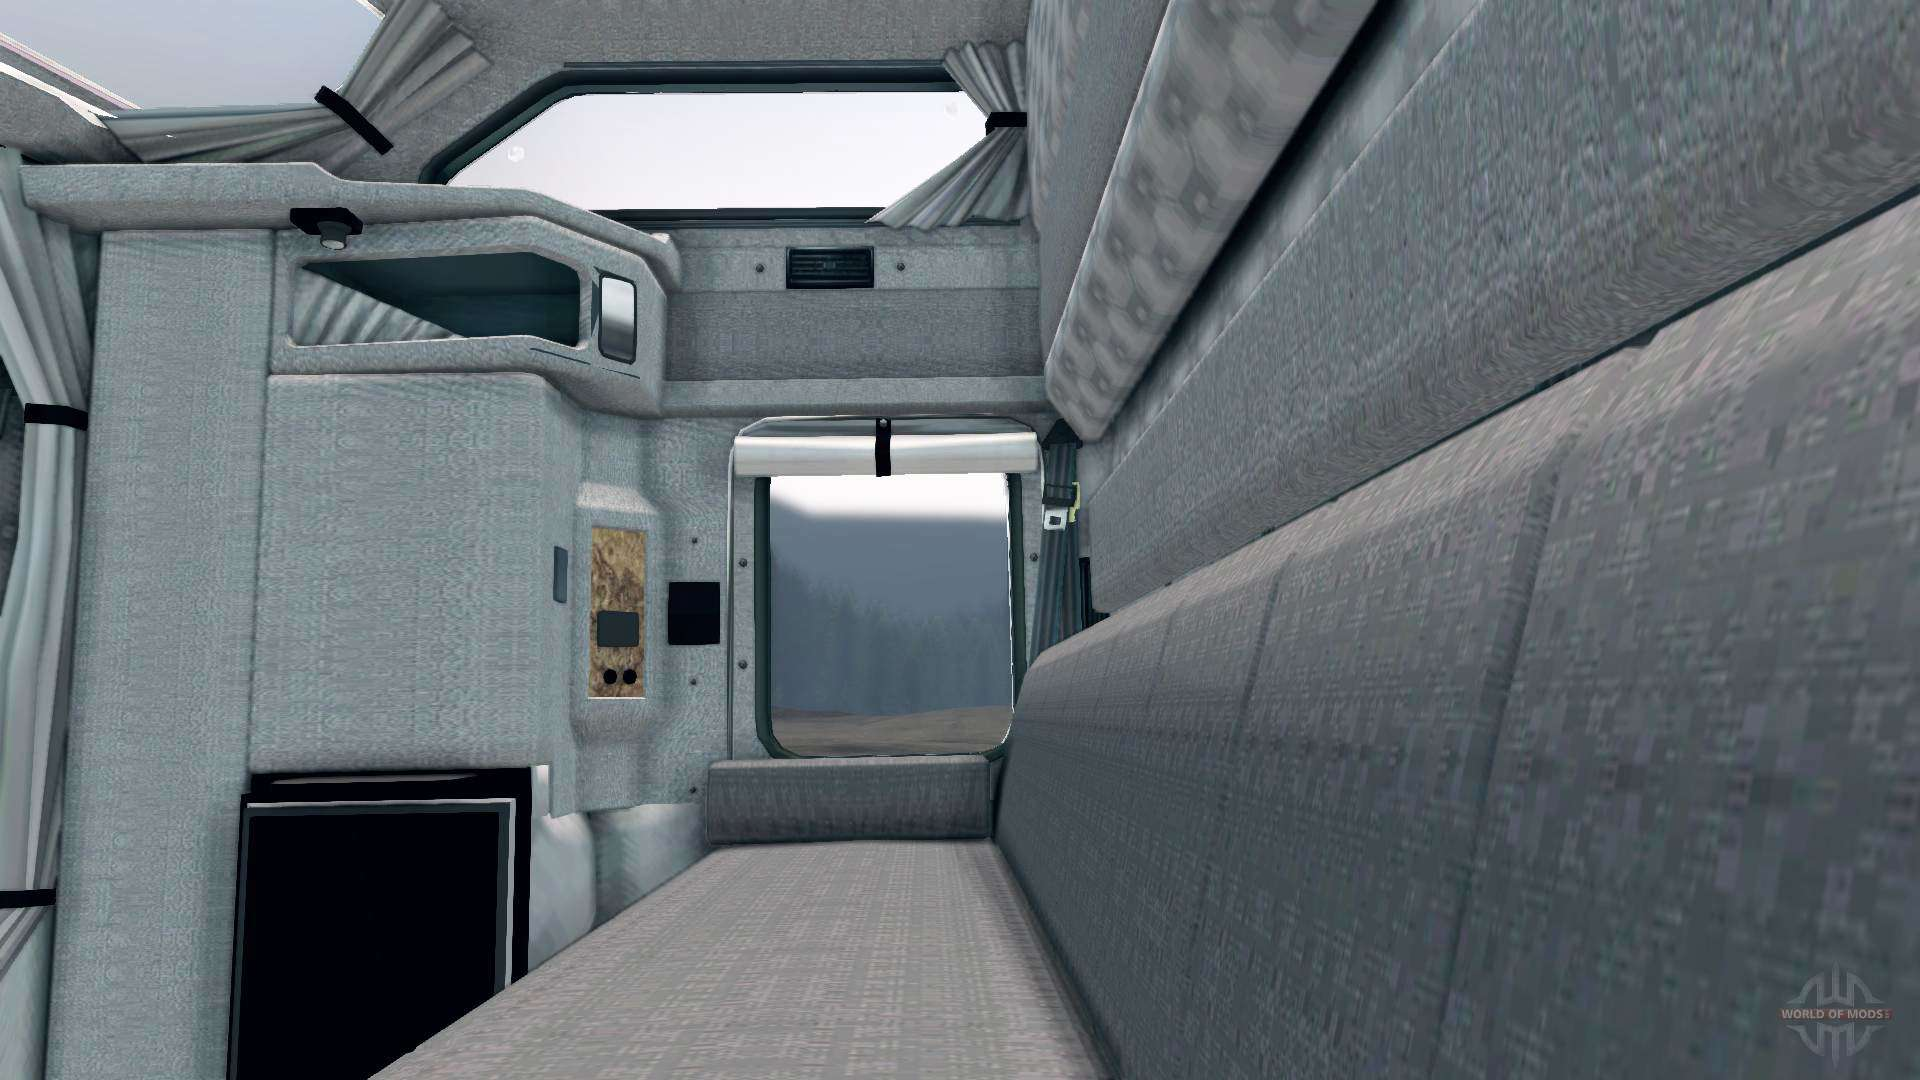 Kenworth t600 for spin tires for Kenworth t660 studio sleeper interior